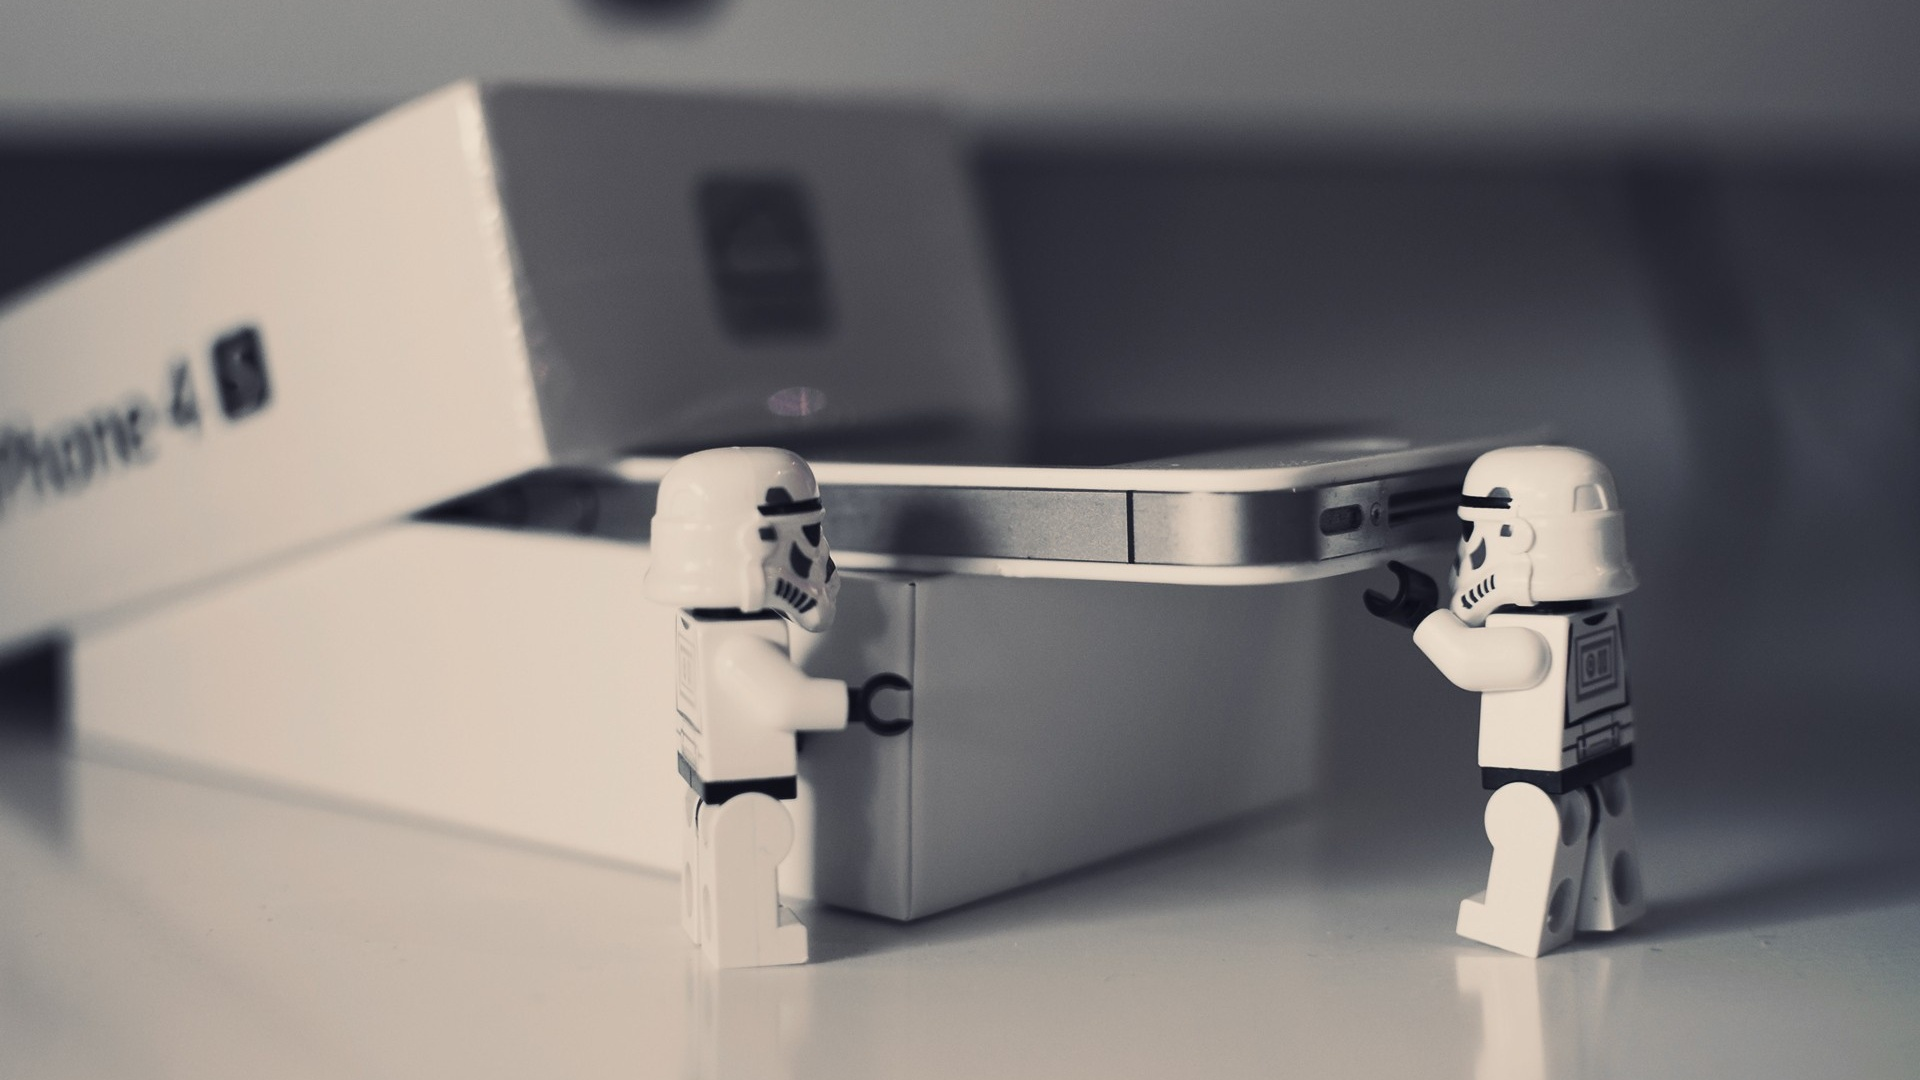 1920x1080 Lego Star Wars Iphone 4 Unboxing Desktop Pc And